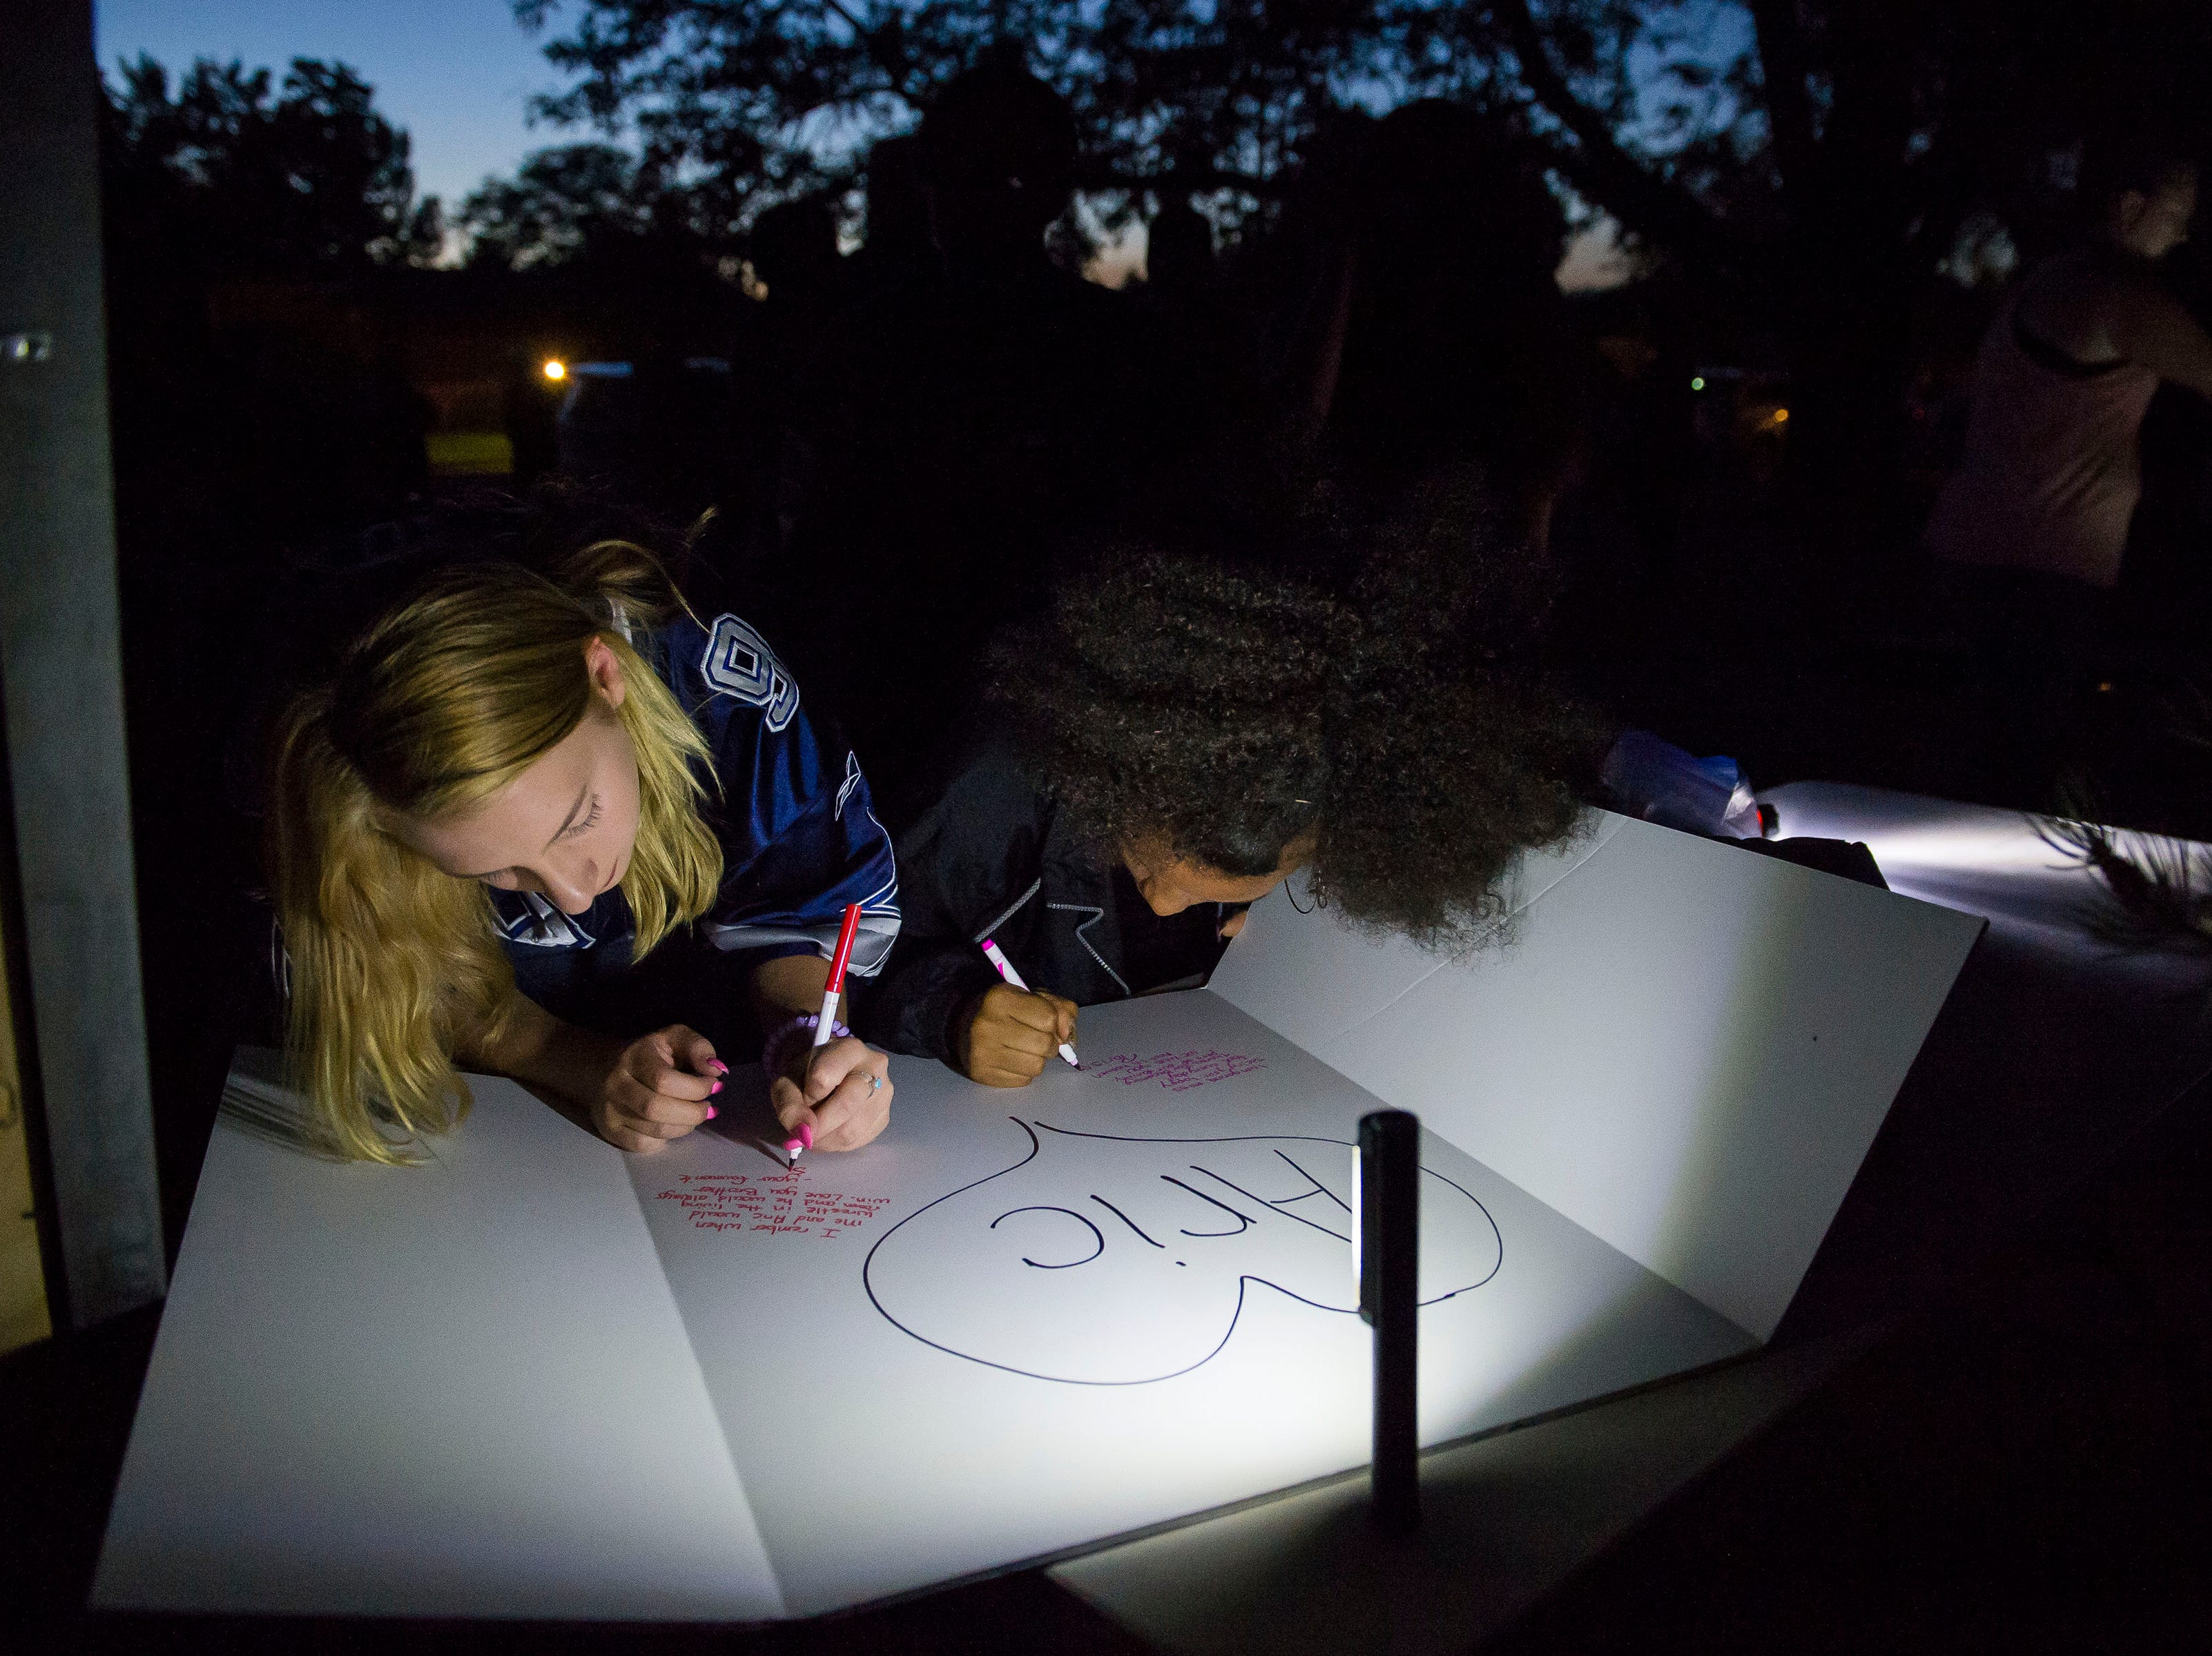 Family and friends write messages on a poster board while other mourners gather for a vigil in front of the home of Aric Whaley, a 17 year old who was fatally shot at the home early Tuesday morning, Sept. 4, as seen on Saturday, Sept. 15, 2018, in Loveland, Colo. Gabriel Jesus Romero Ventura, 18, was arrested by Loveland police less than a mile from the residence on suspicion of manslaughter, first-degree assault and prohibited use of a weapon.